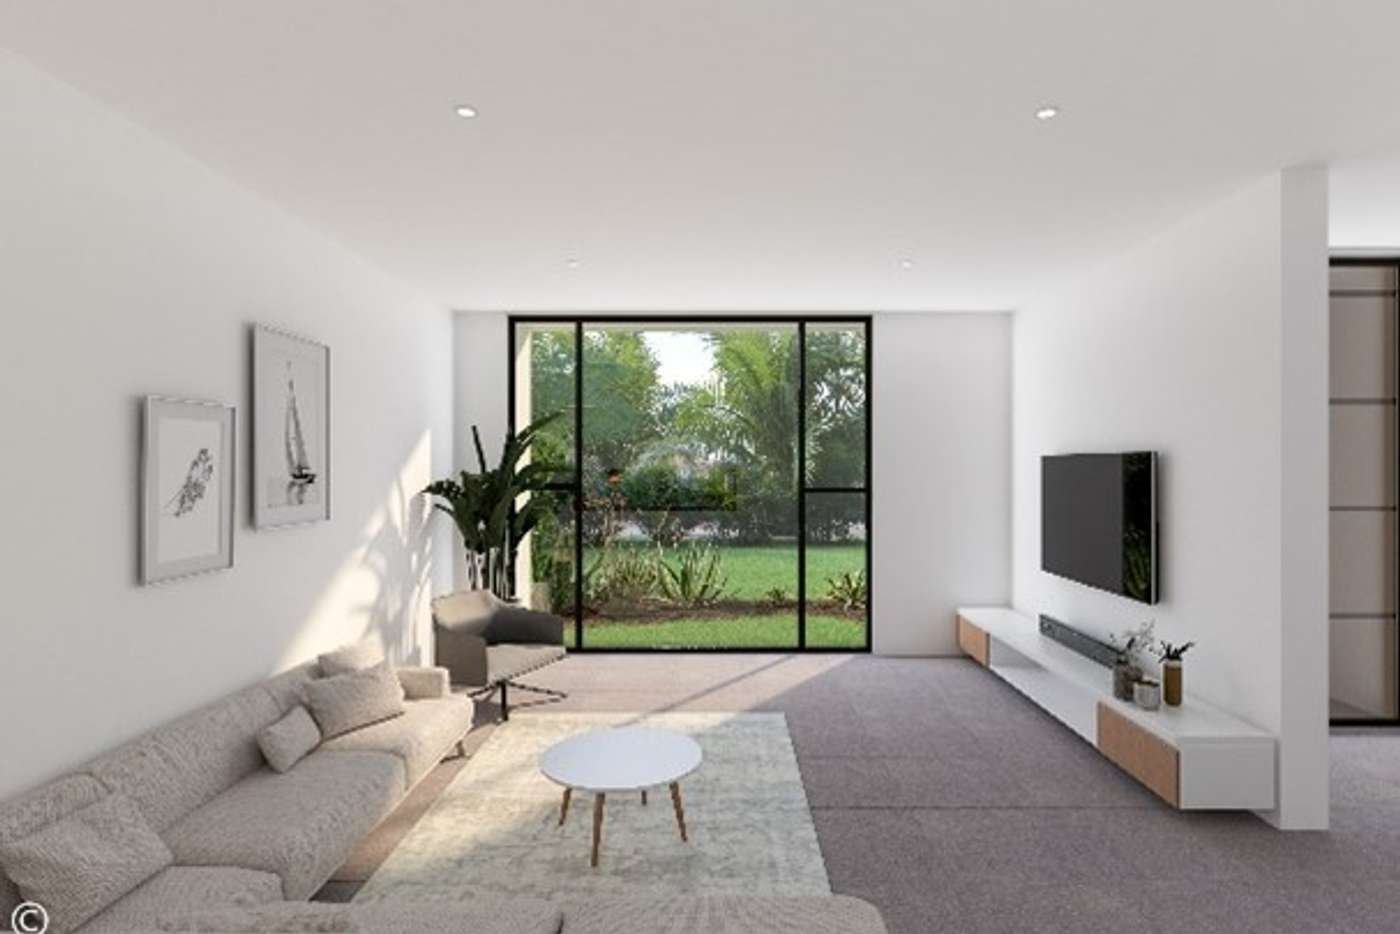 Fifth view of Homely house listing, Address available on request